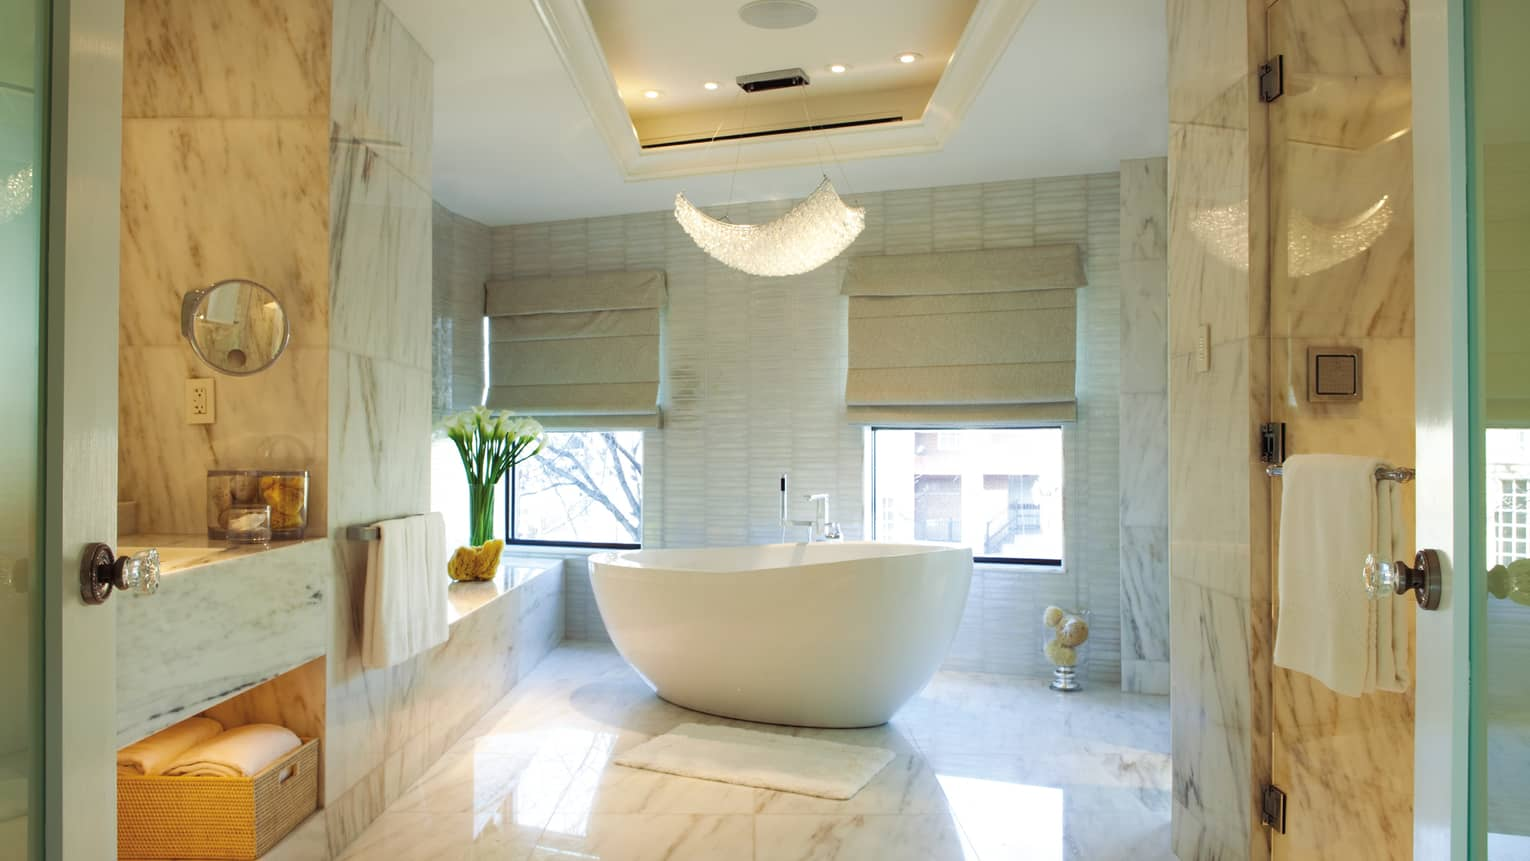 Royal Suite white marble bathroom with large, modern freestanding tub near double windows